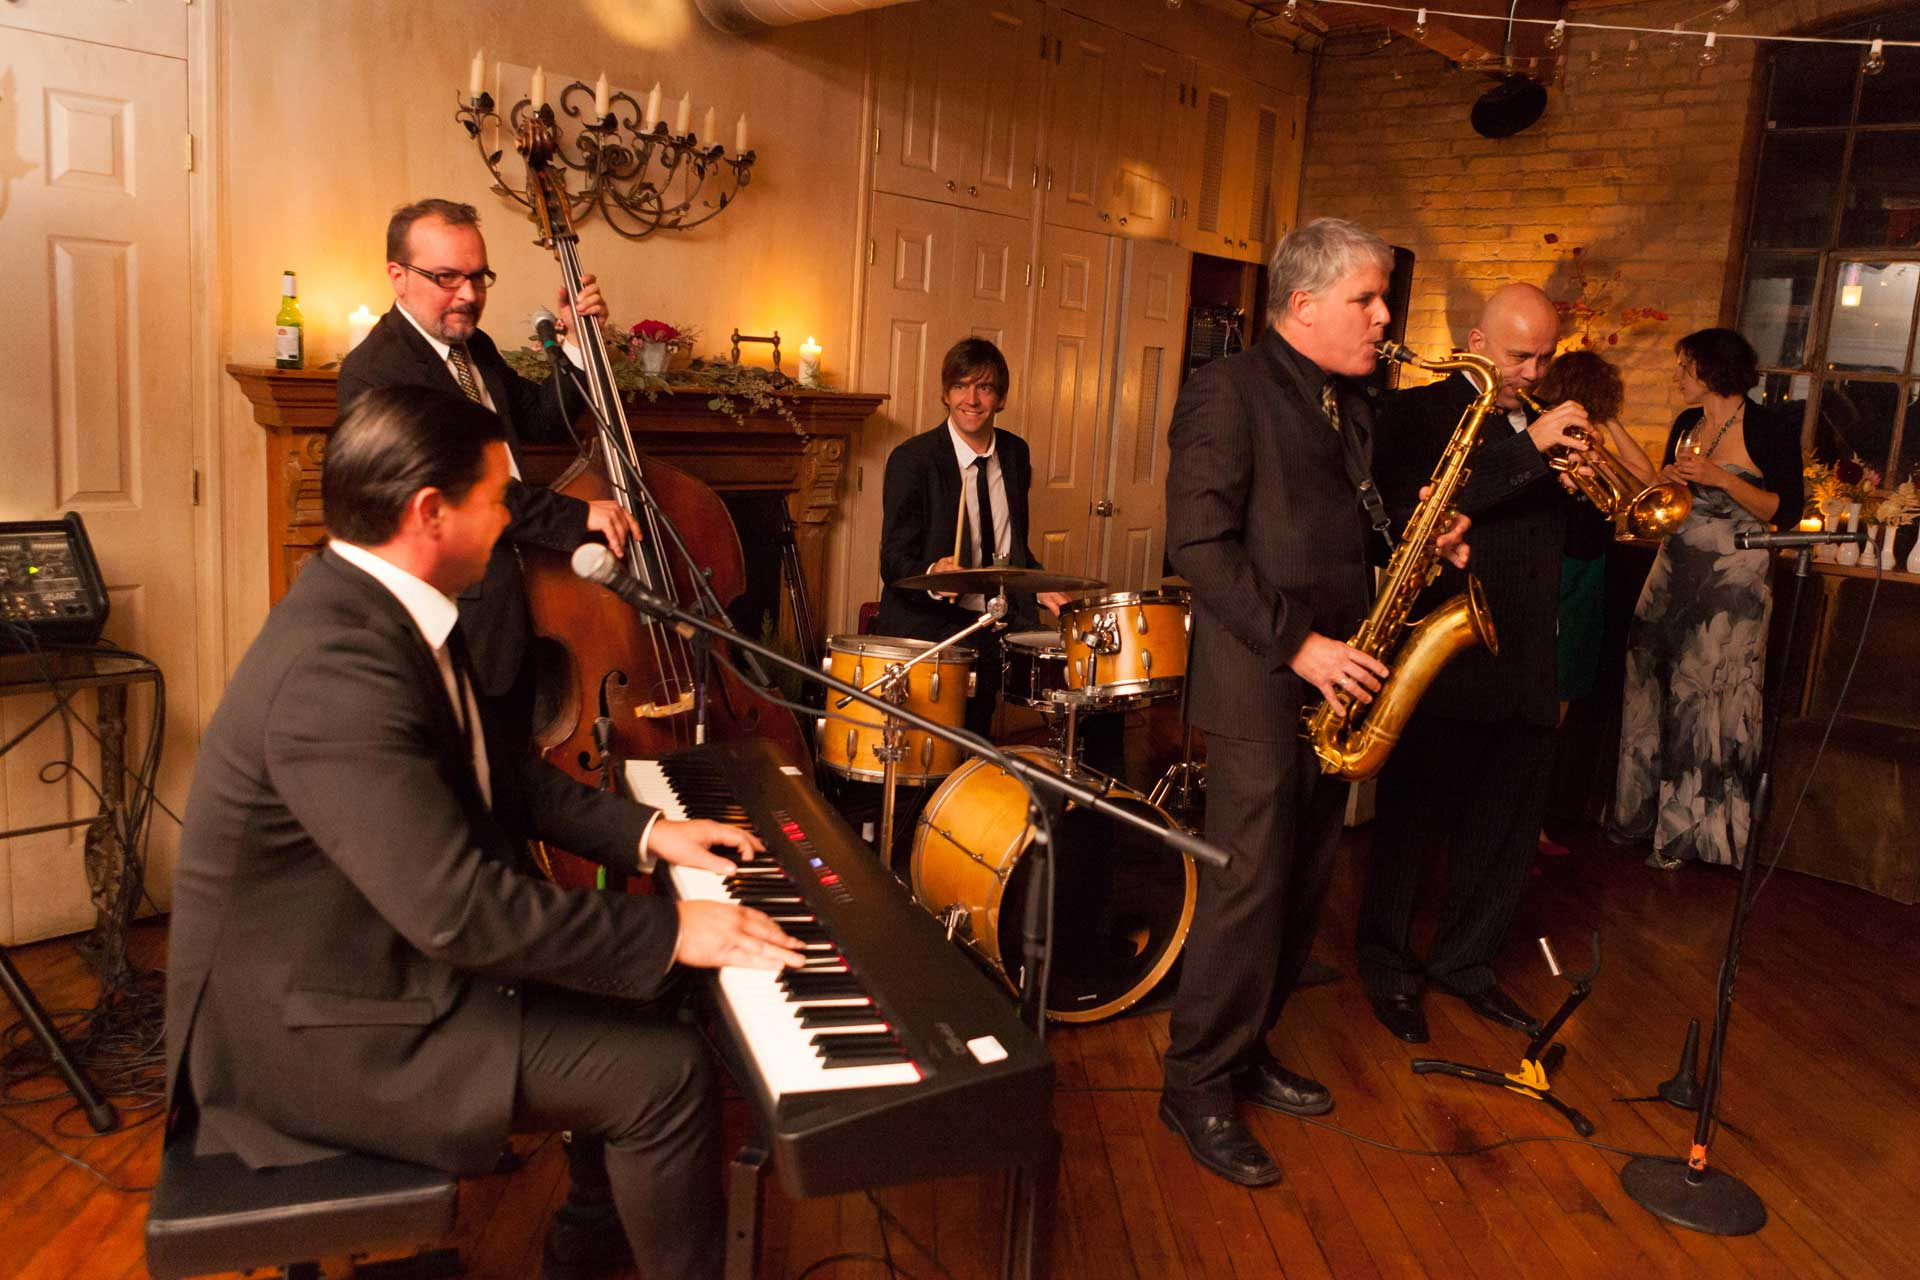 Unique Wedding Venues Toronto - Live Band - Jazz Quintet